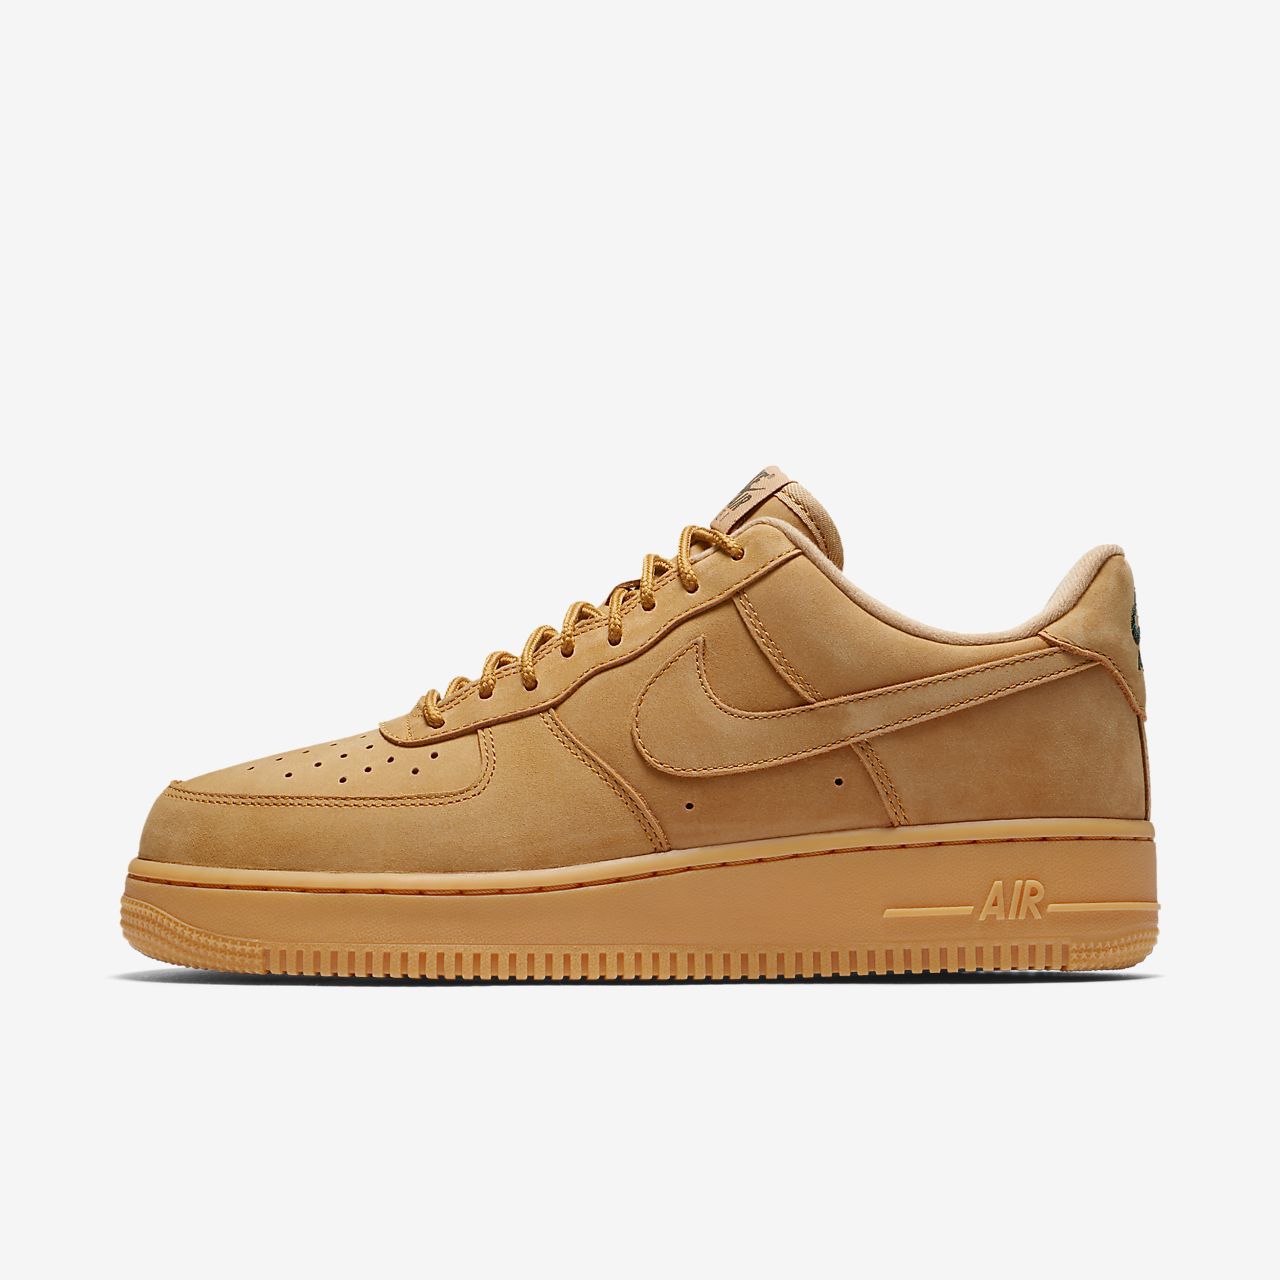 official photos 2ad96 c4a73 ... Nike Air Force 1 07 WB Mens Shoe